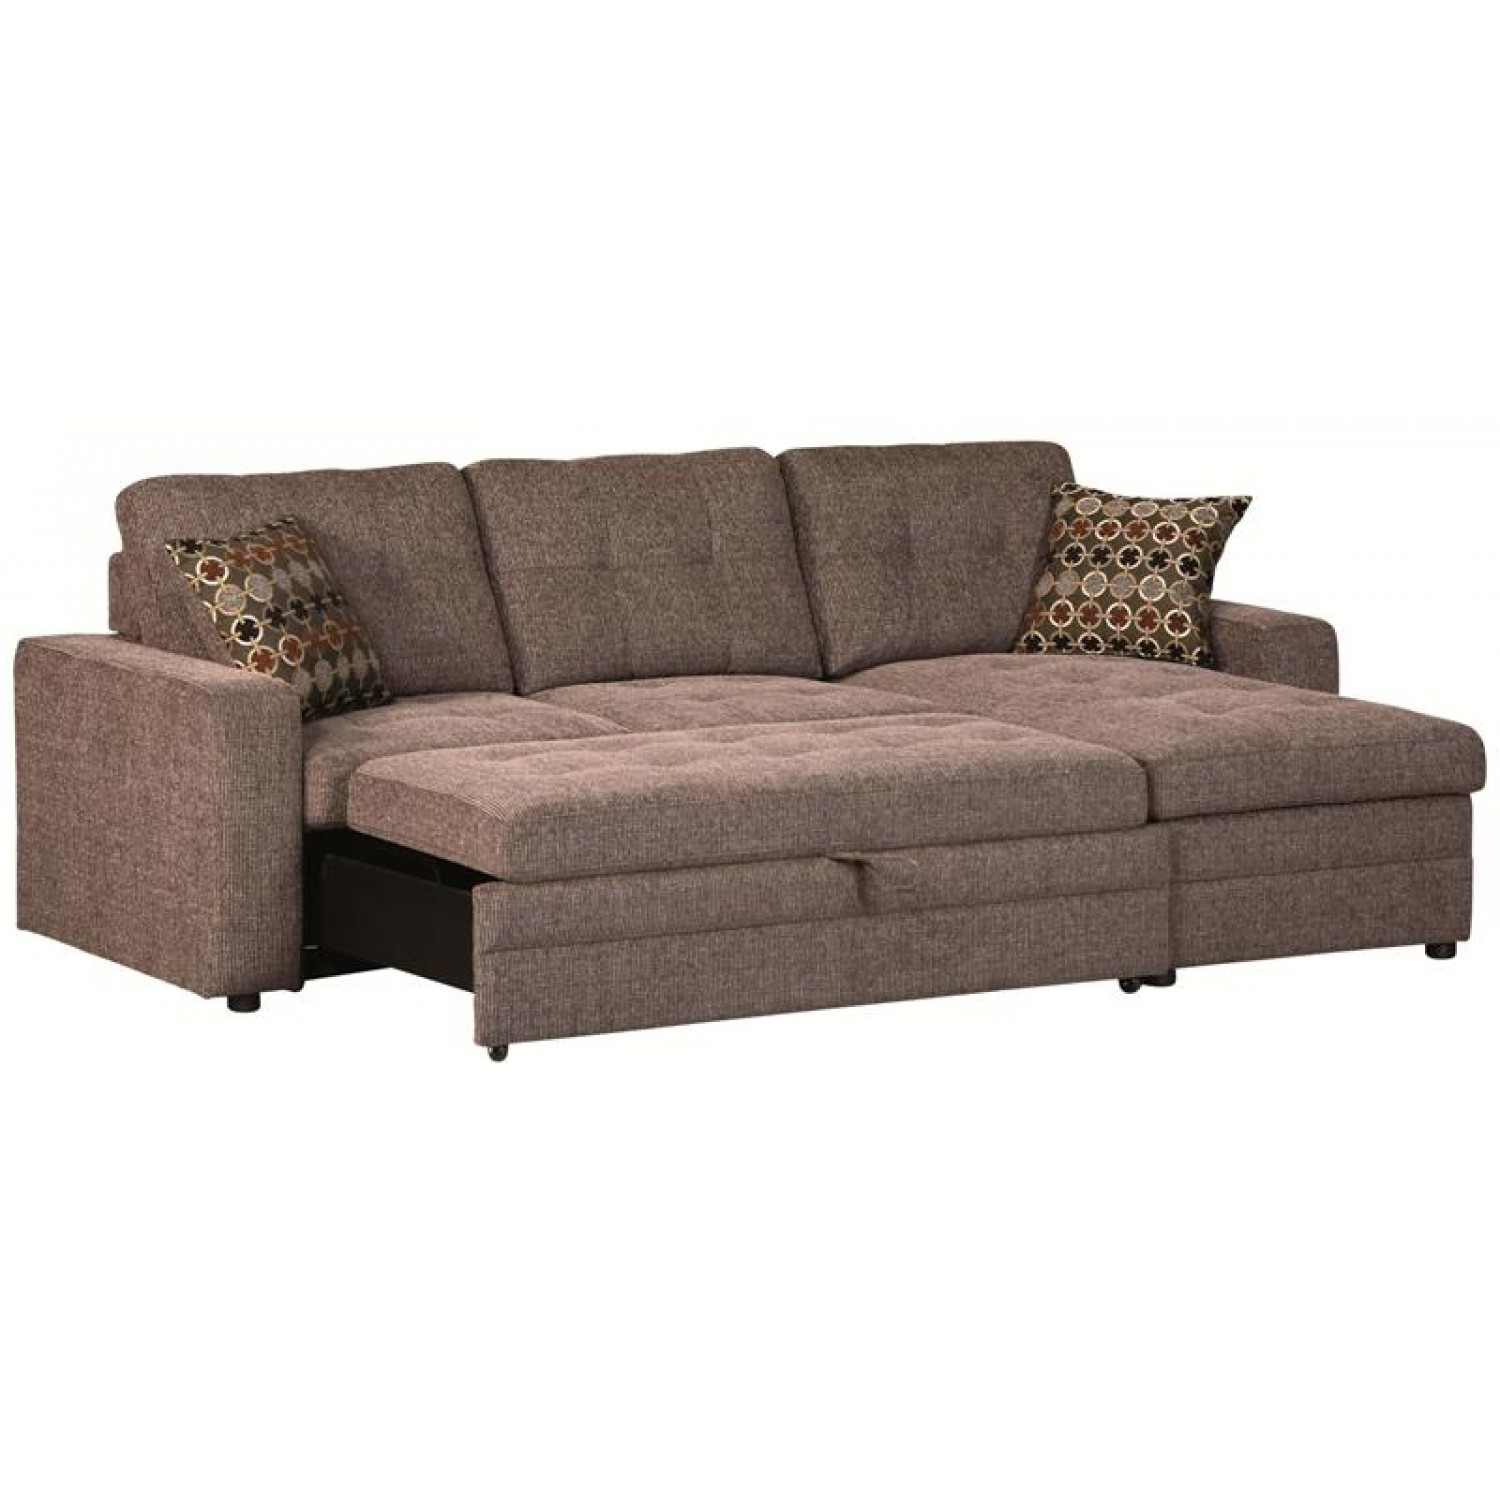 sofa lounger with pull out bed very comfortable 10 best beds sectional sofas ideas